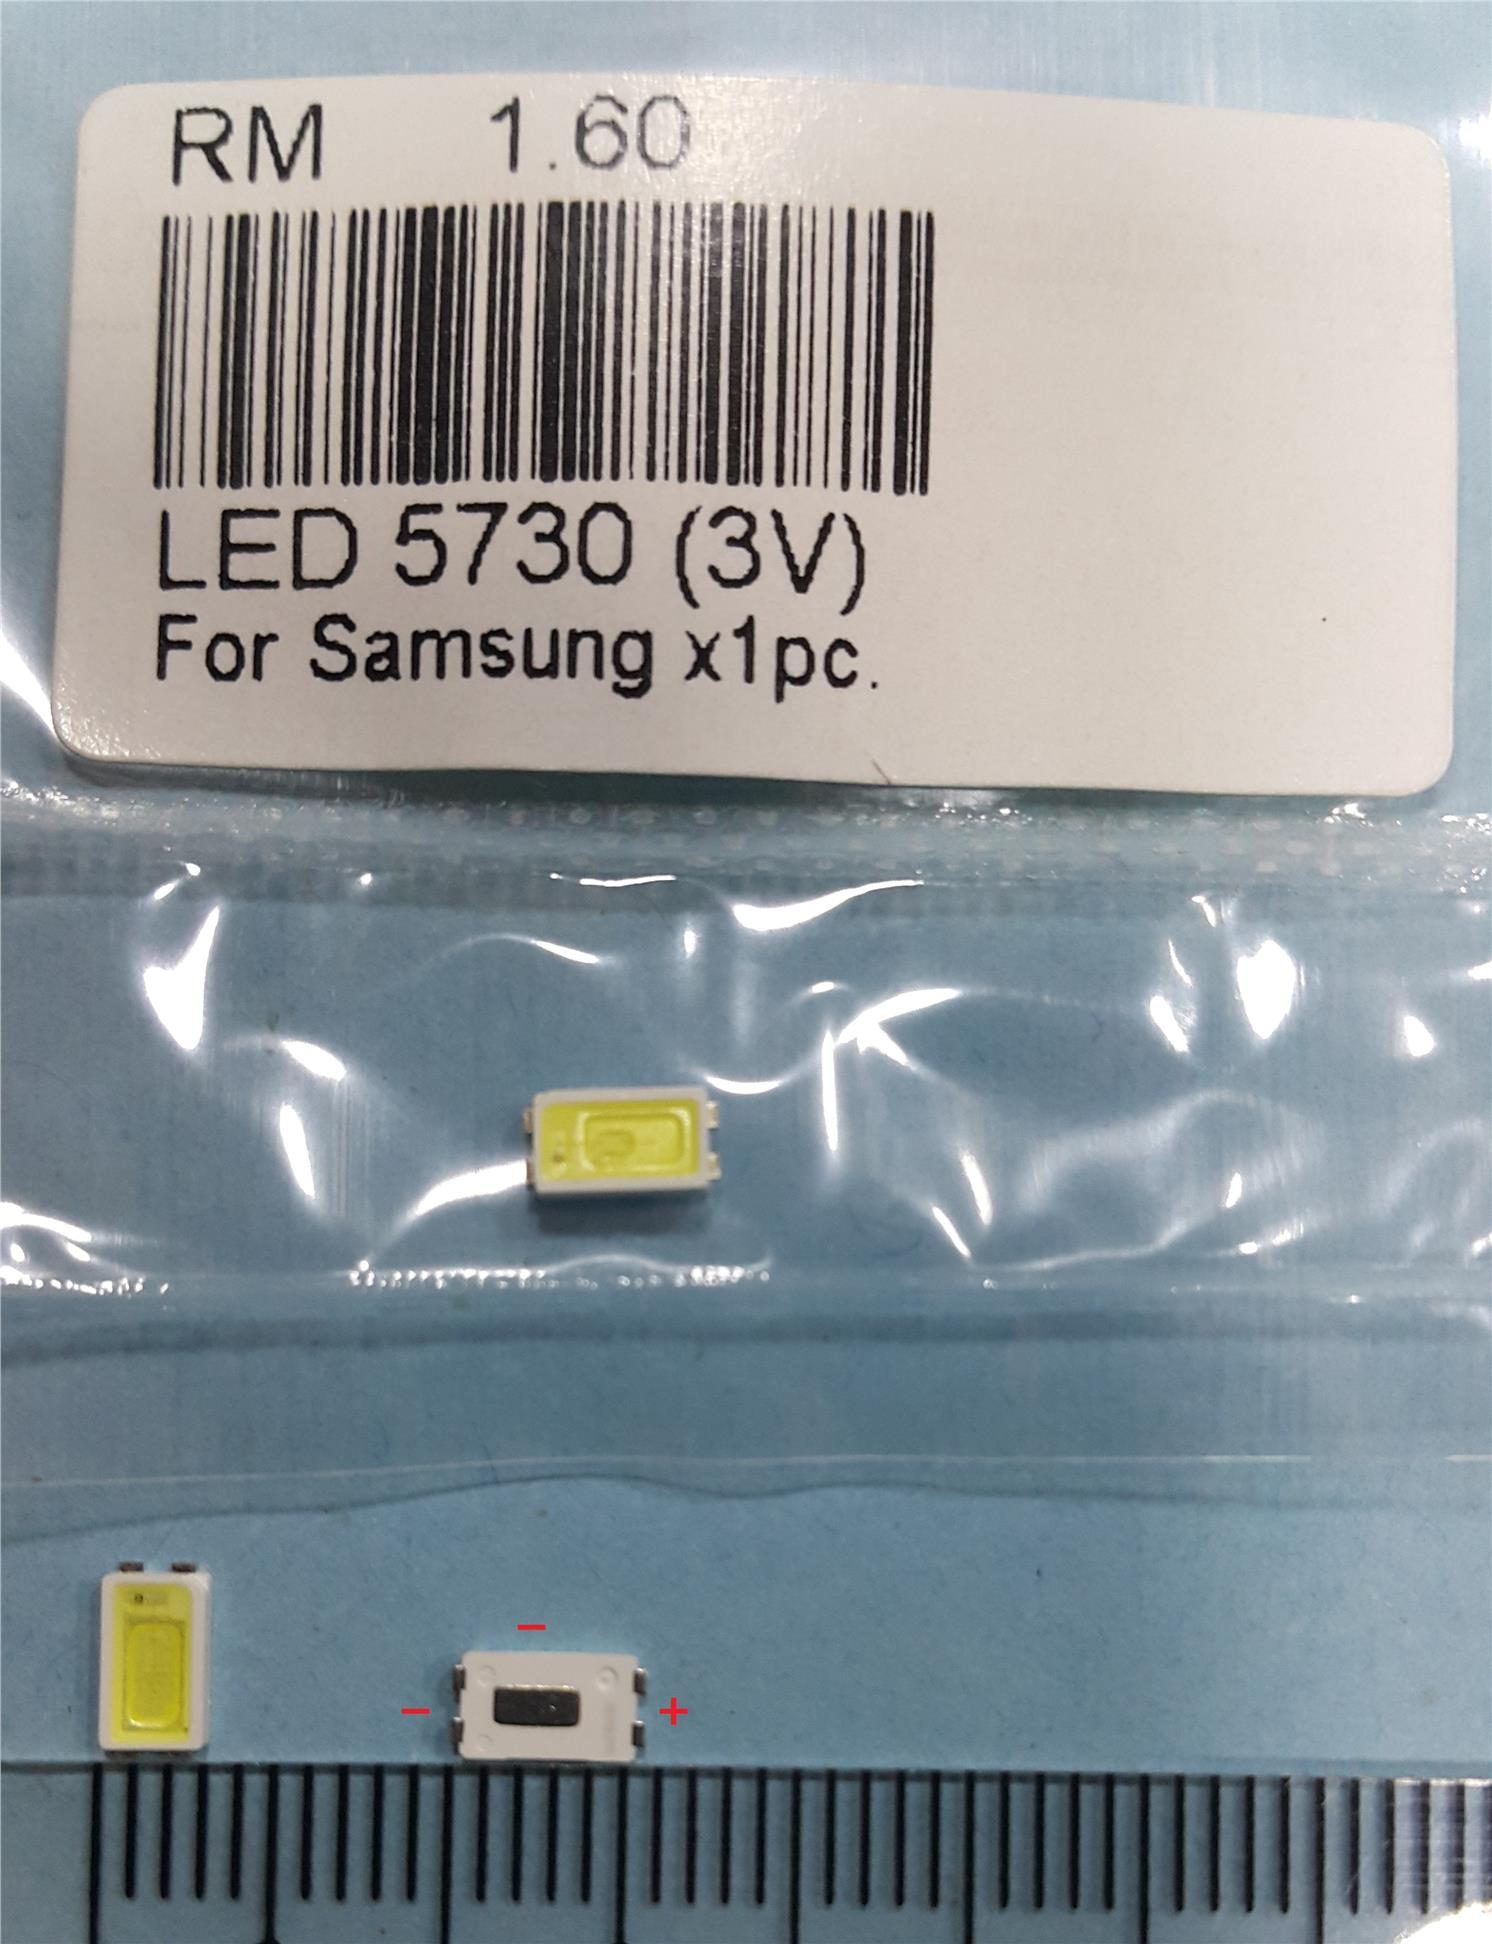 LED 5730 (3V) For Samsung Panel